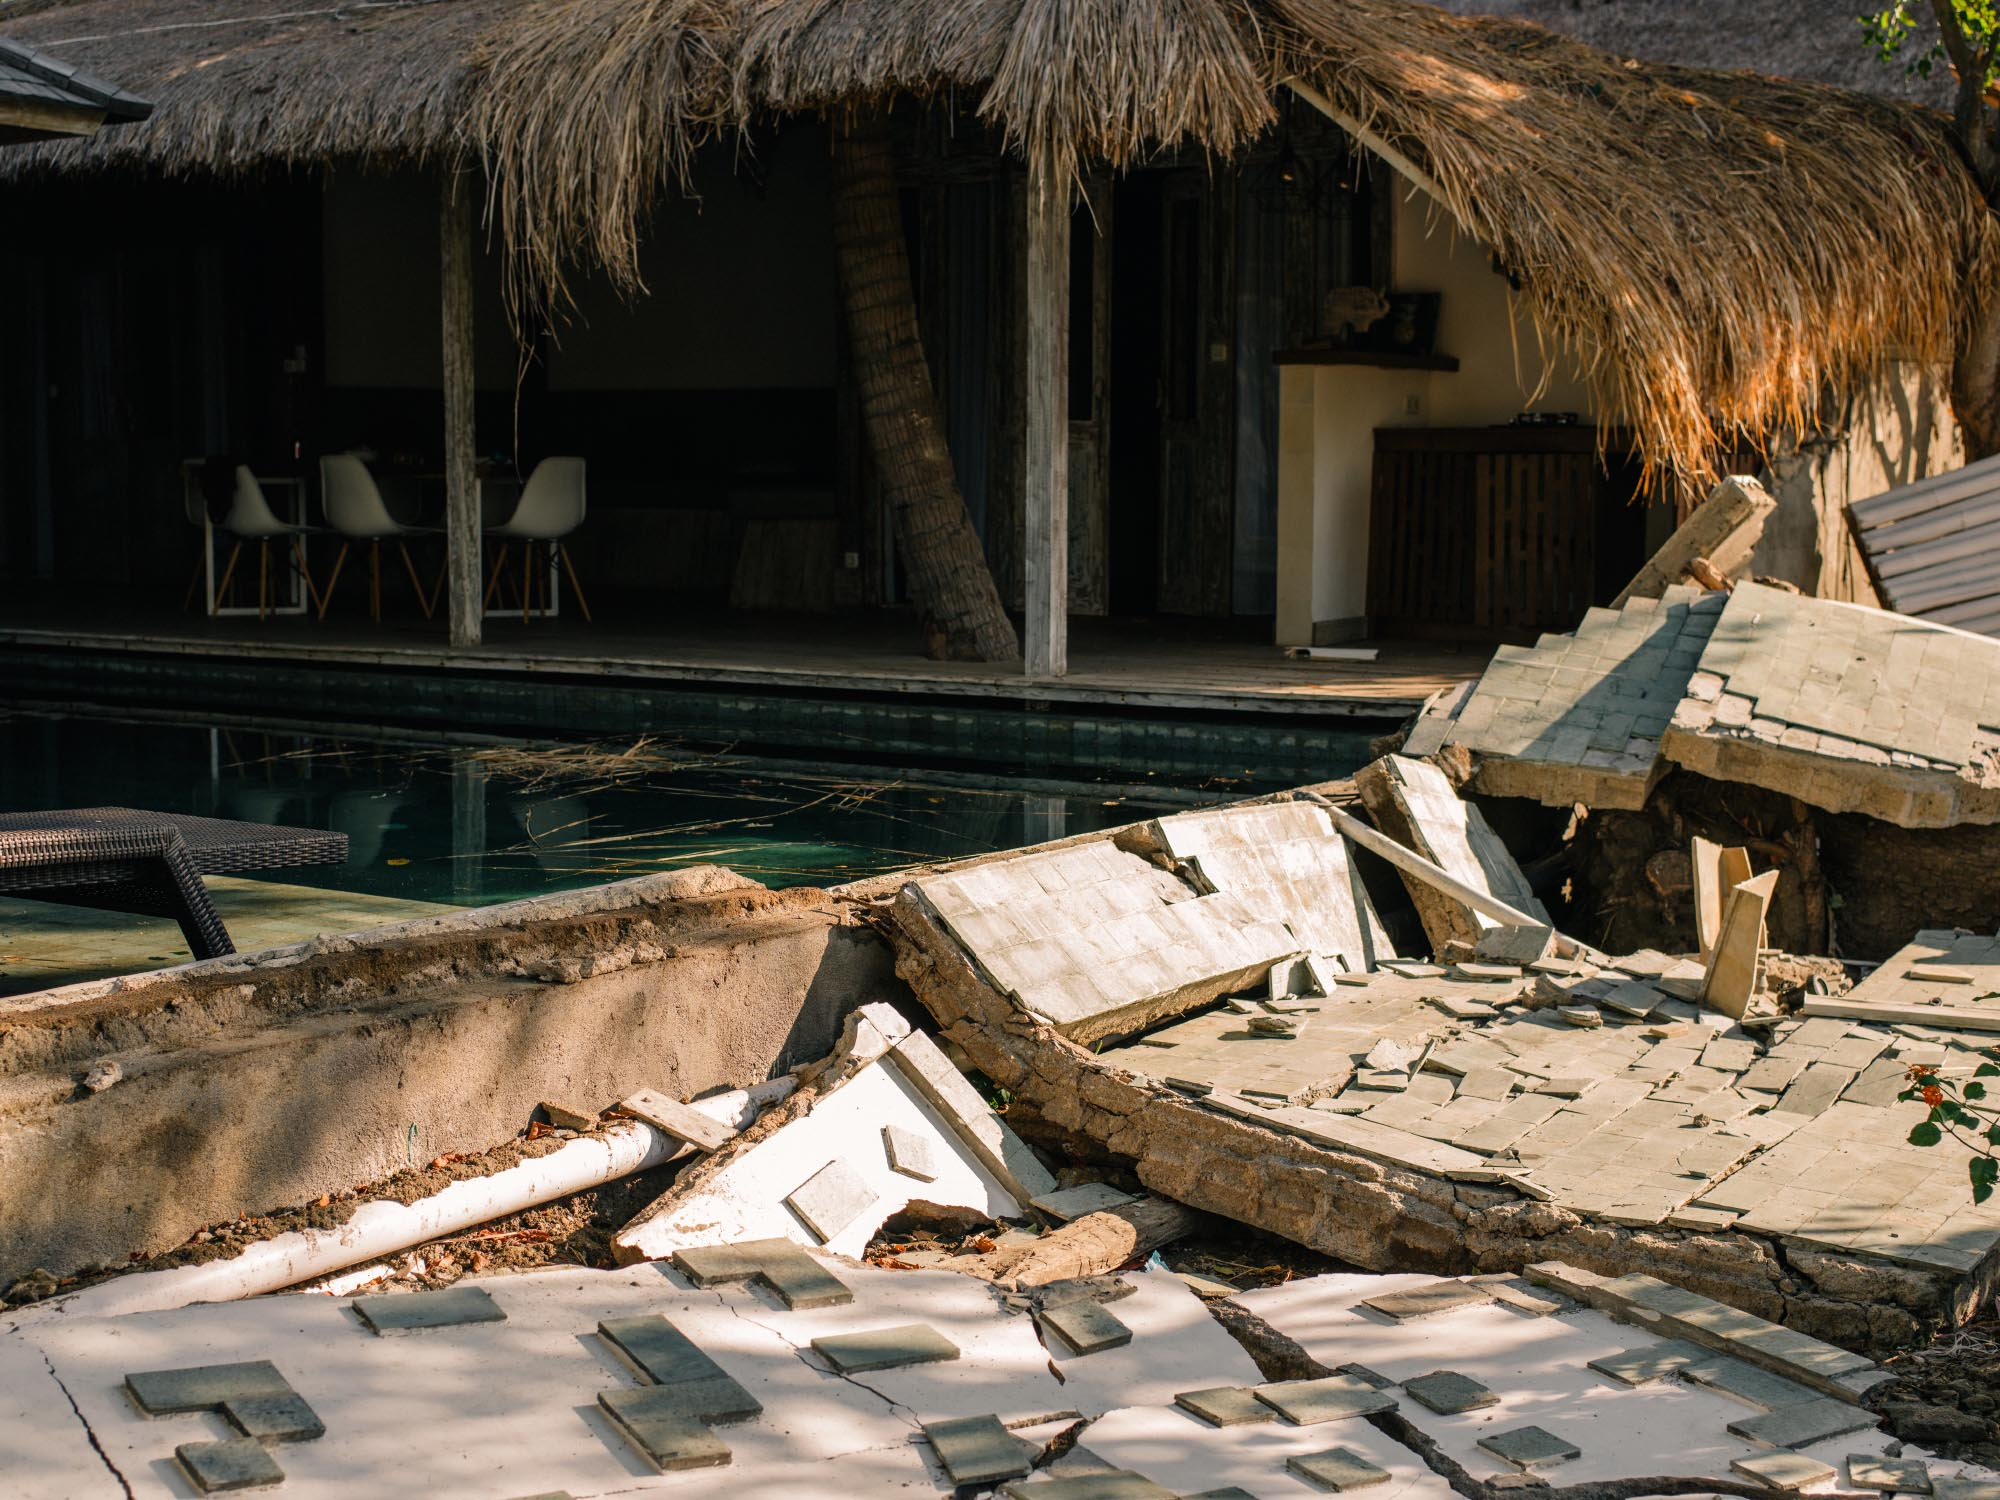 Damage Earthquake Gili Air - Lombok 2018.